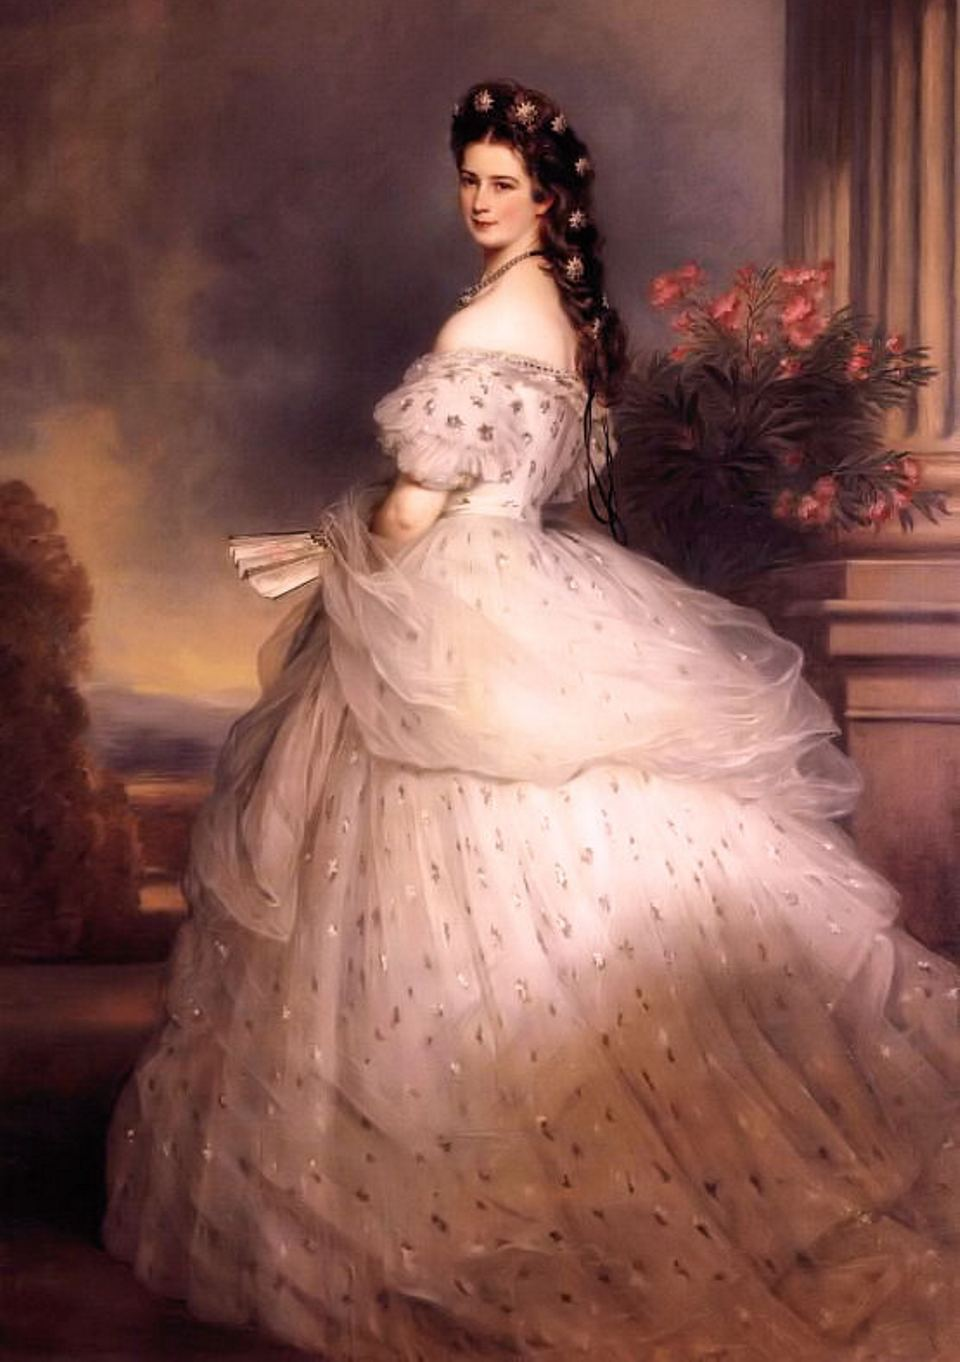 The Diet of Stunning Empress Elisabeth of Austria